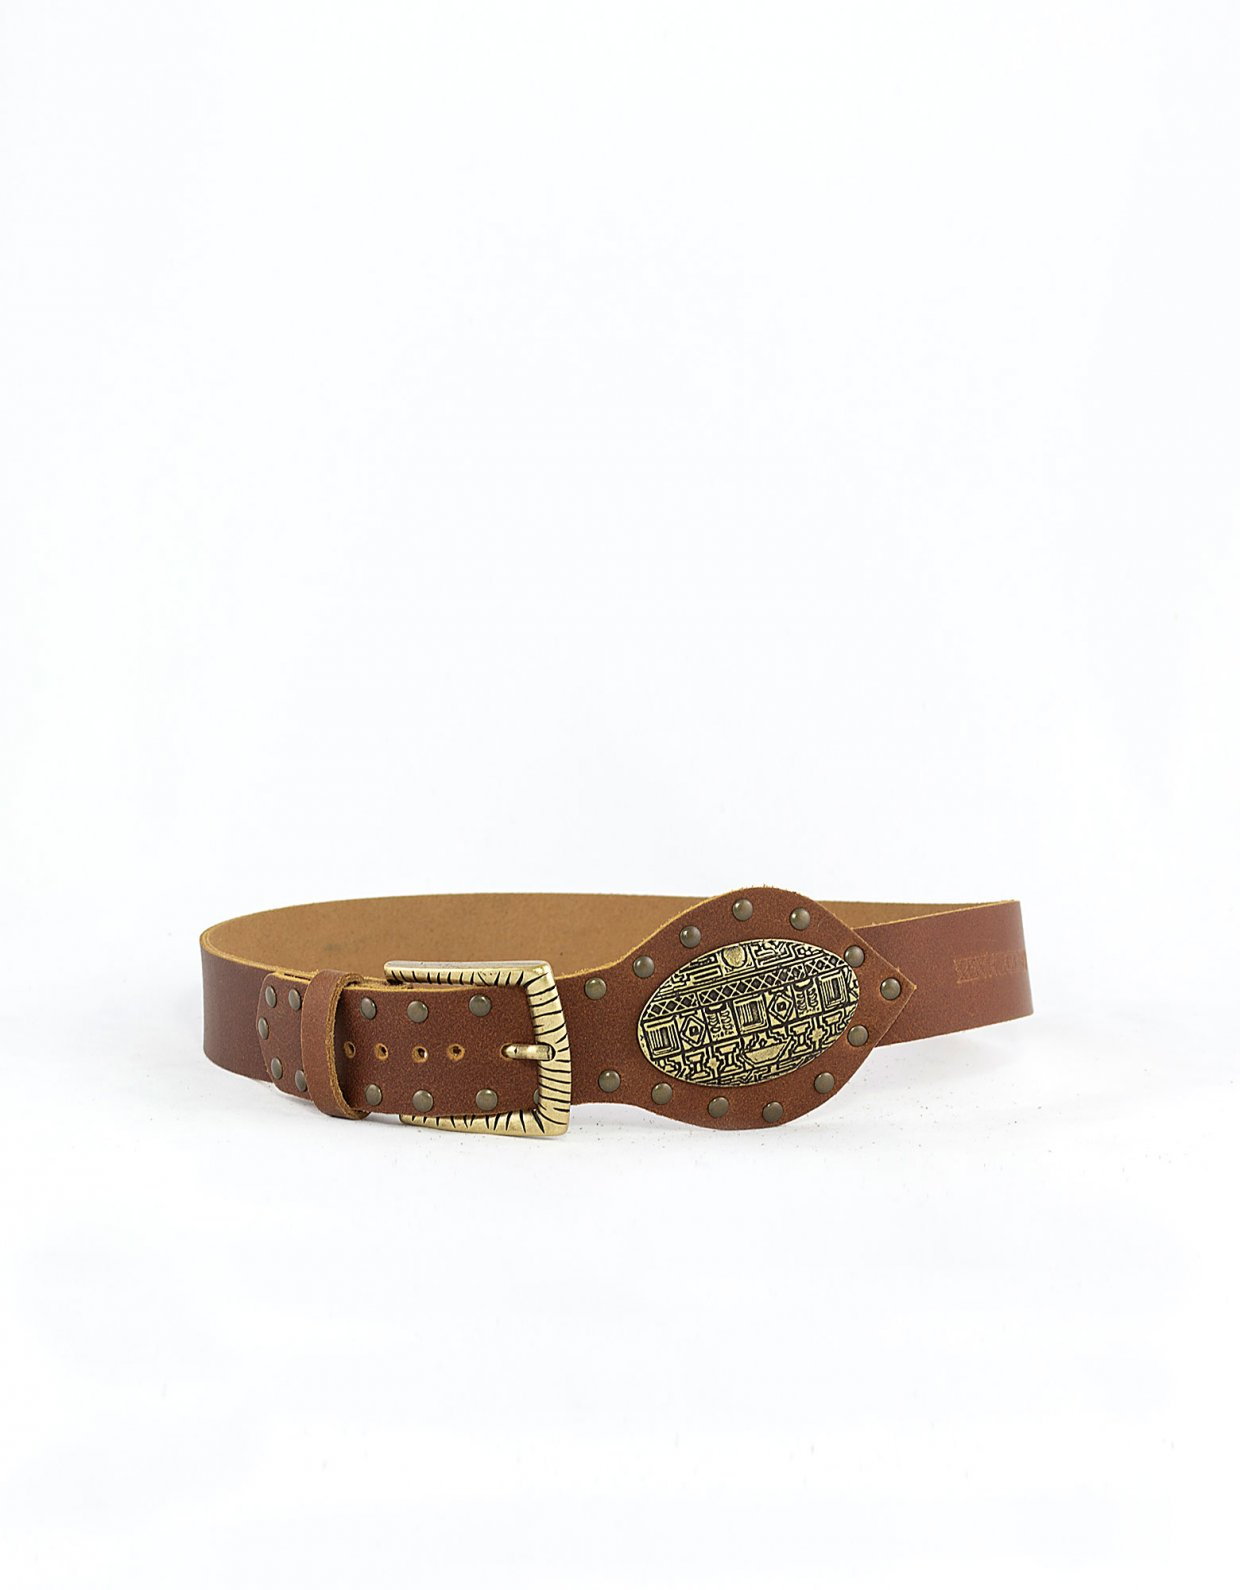 Peace & Chaos Serenity belt tanned